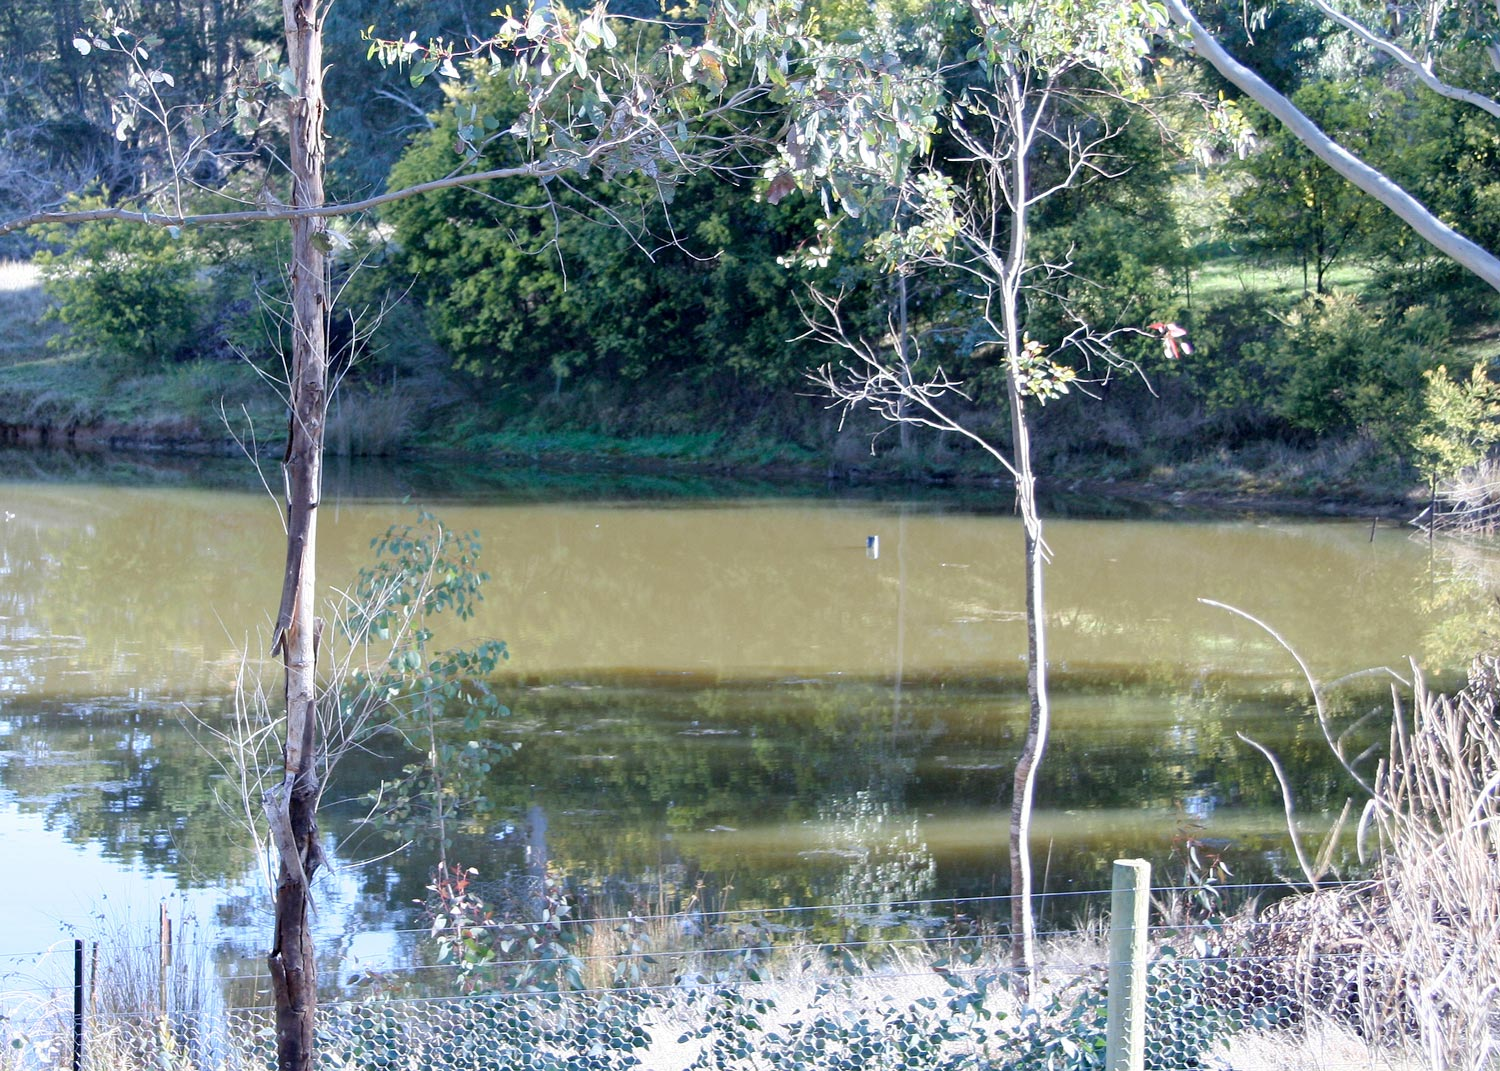 A. The Dam  The reflection of the trees in this dam can be clearly seen, as can the shadows lying across the surface of the water. The murky colour of the dam makes the cast shadows more obvious.